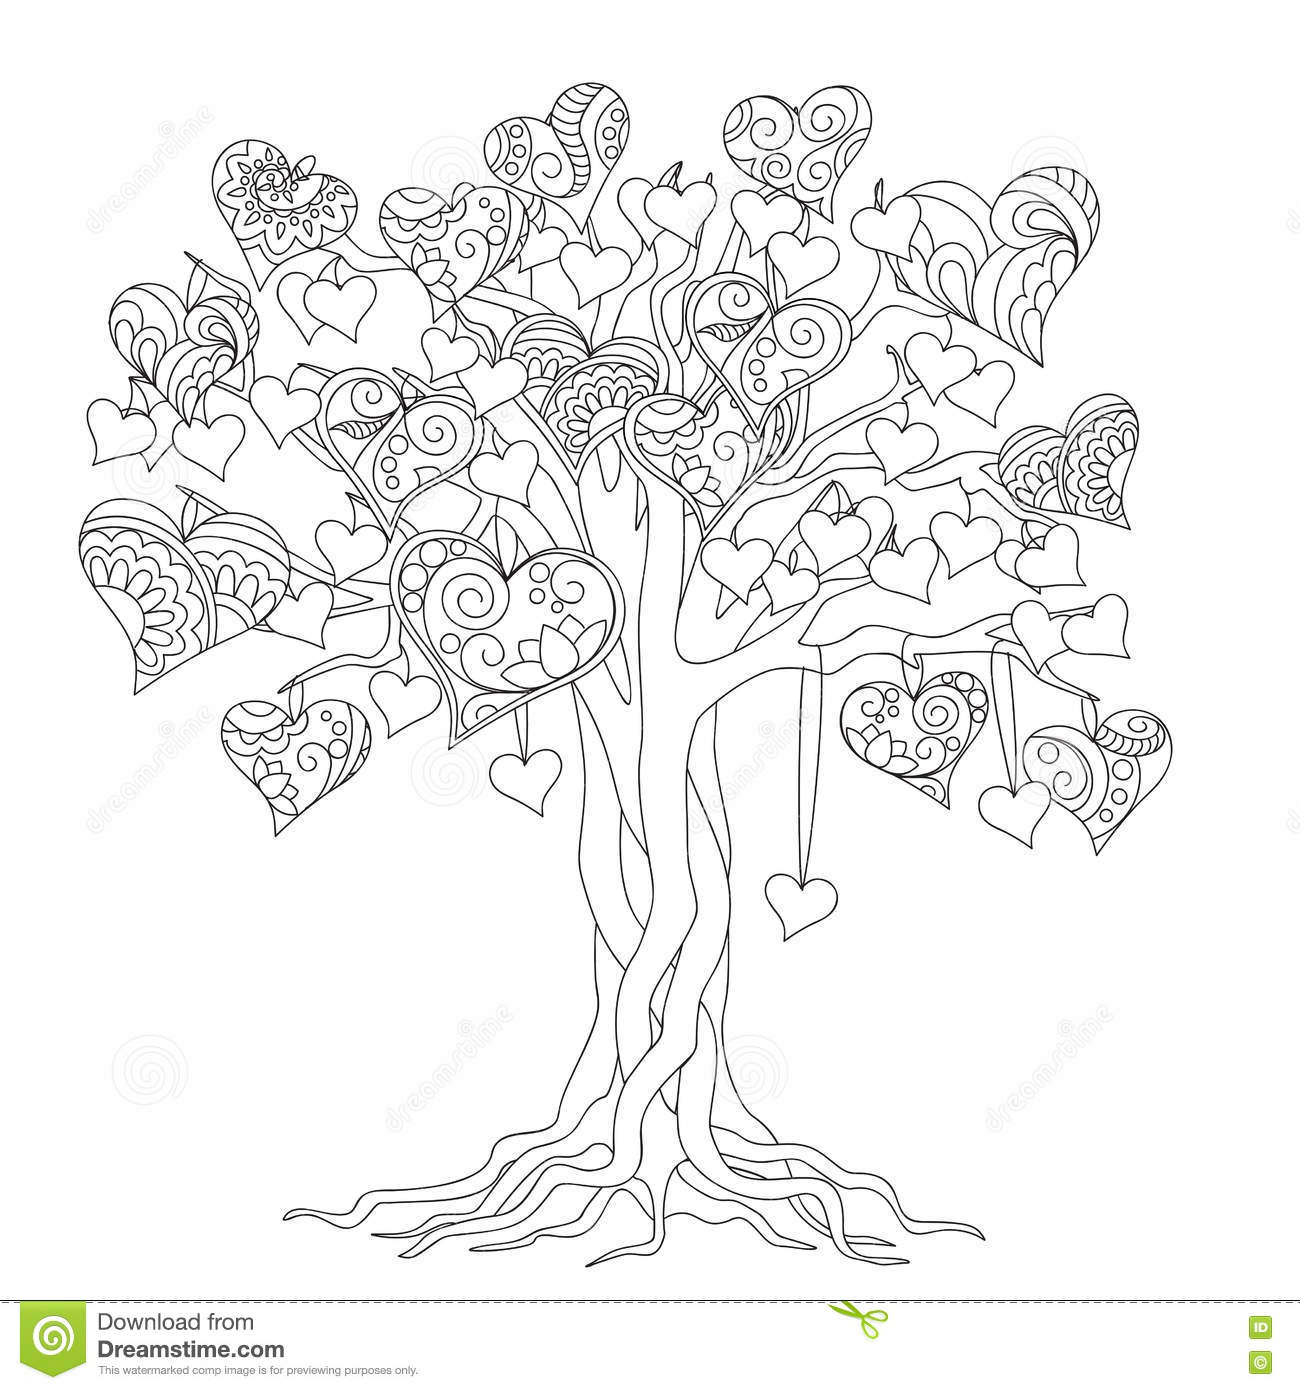 Zen tree of love stock vector